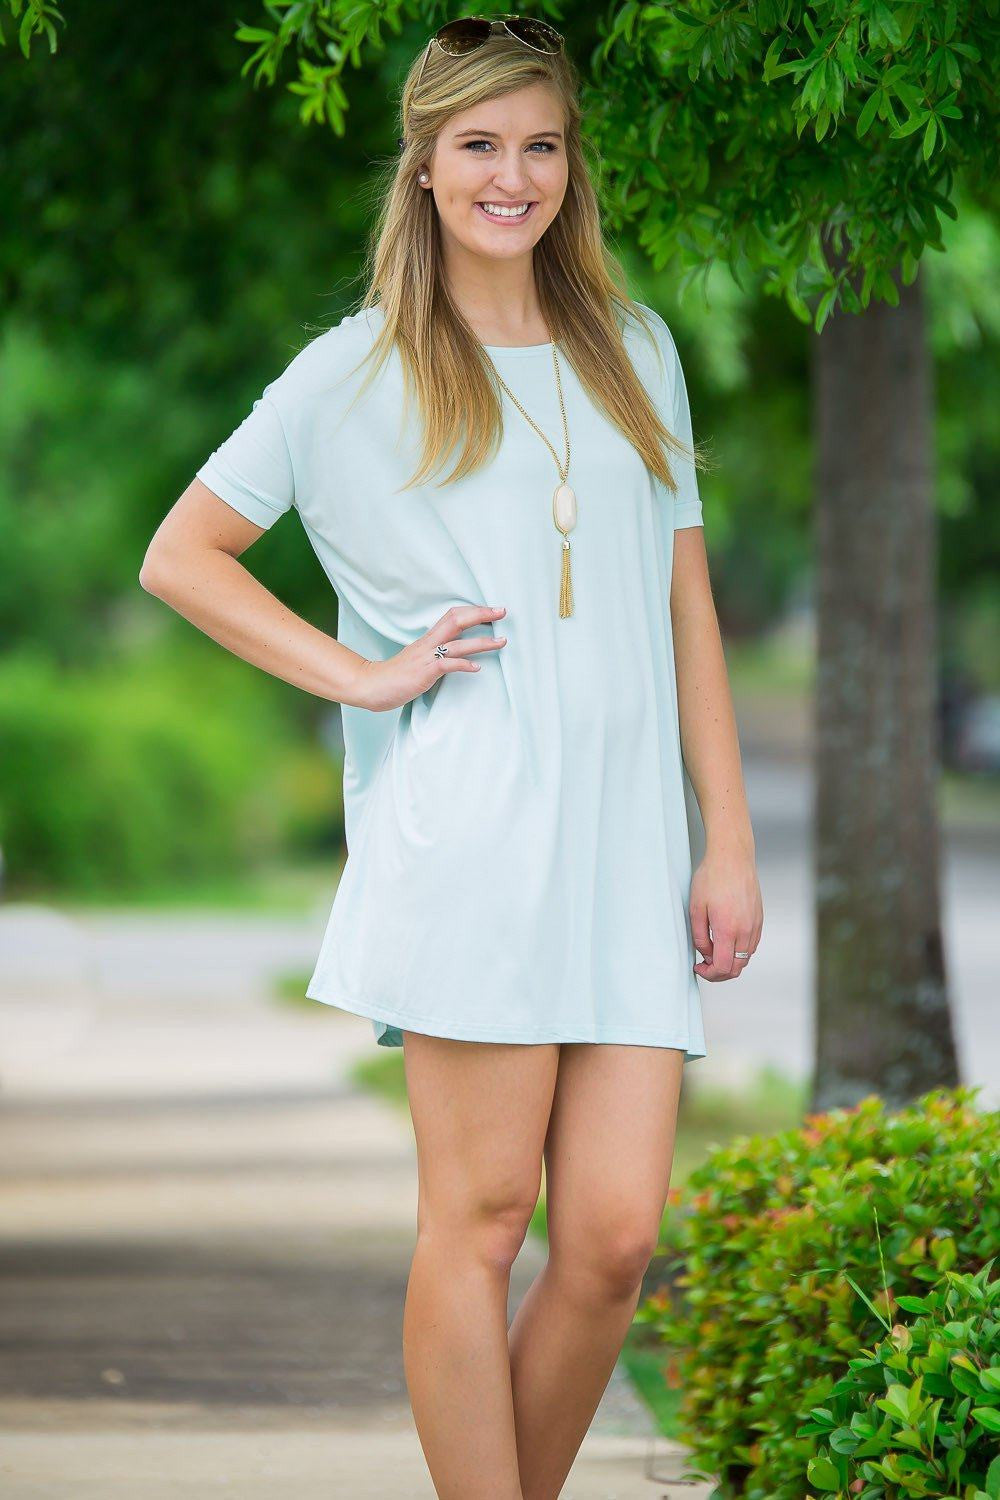 Short Sleeve Piko Tunic - Mint - Piko Clothing - 1